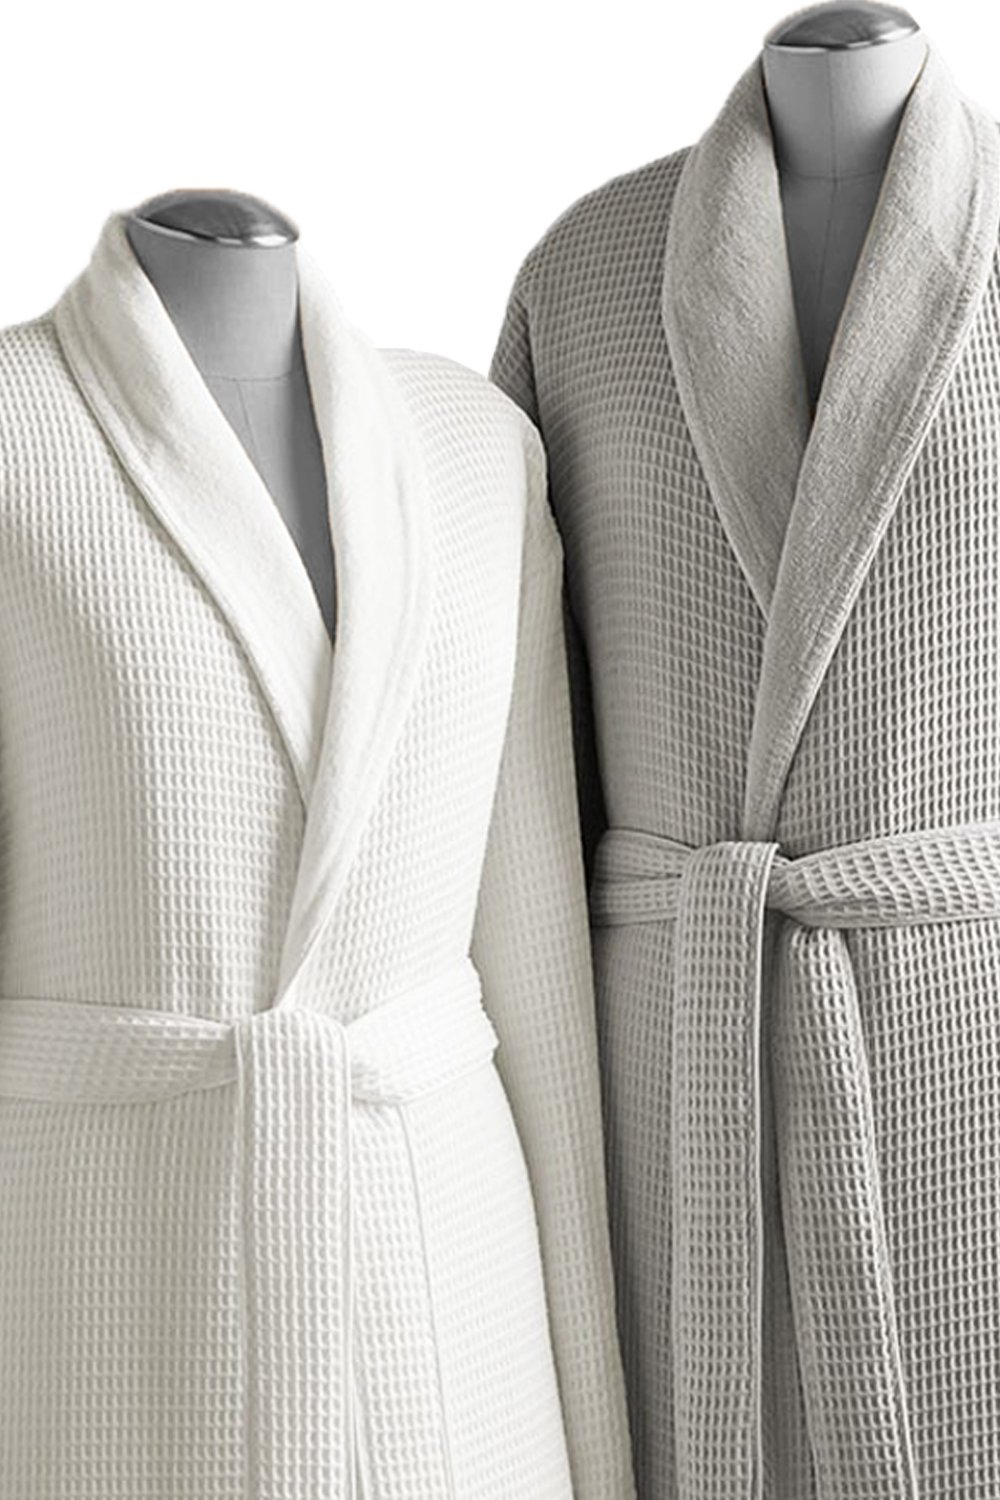 Kassatex Waffle Terry Bathrobe Collection, 100% Cotton, Made in Turkey (Waffle Outside, Thick Terry Inside - S/M - White